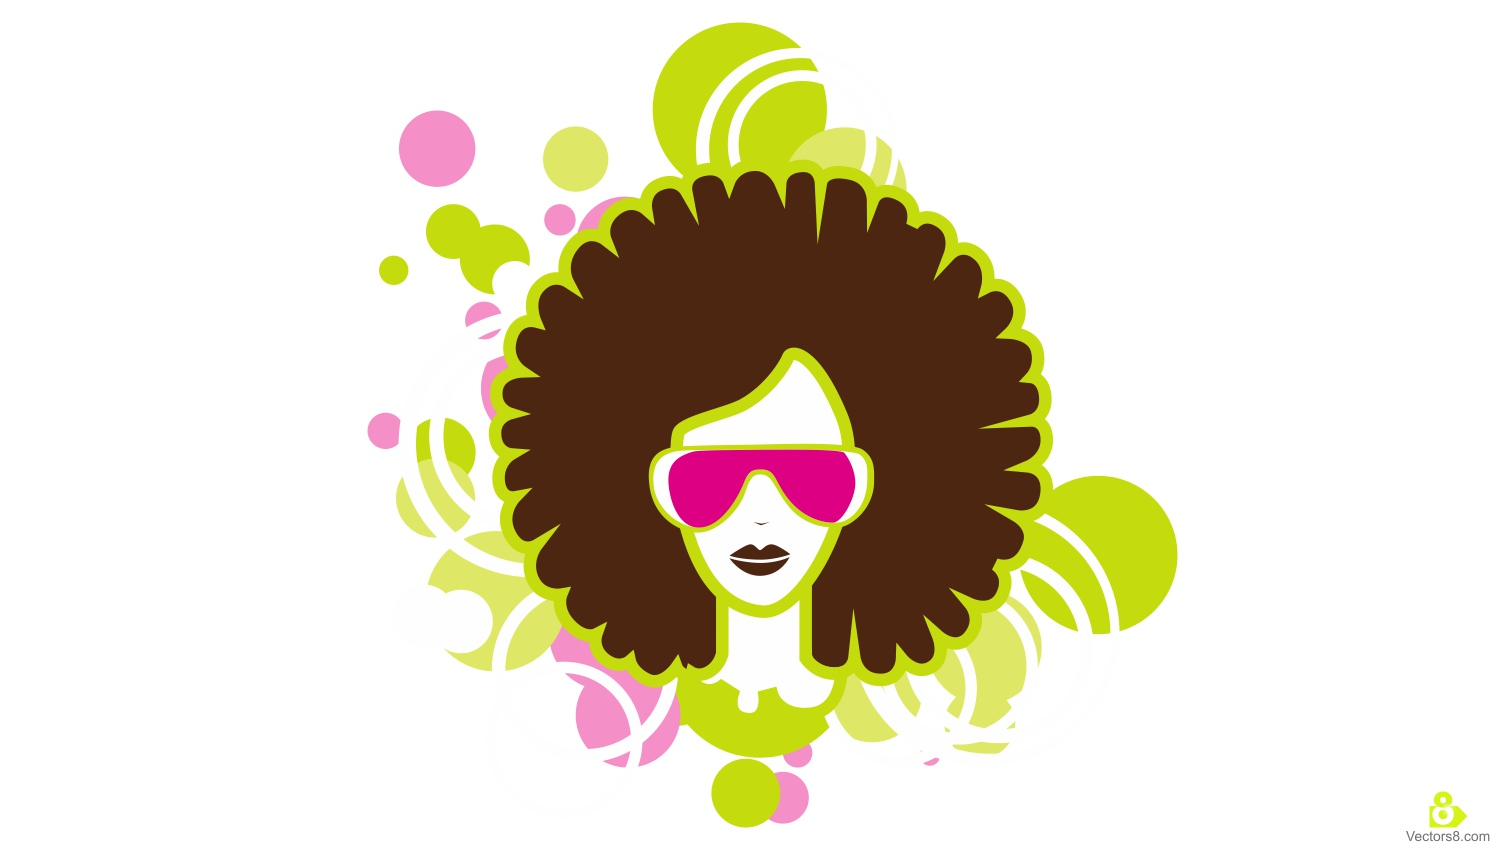 Afro Woman with Natural Hair